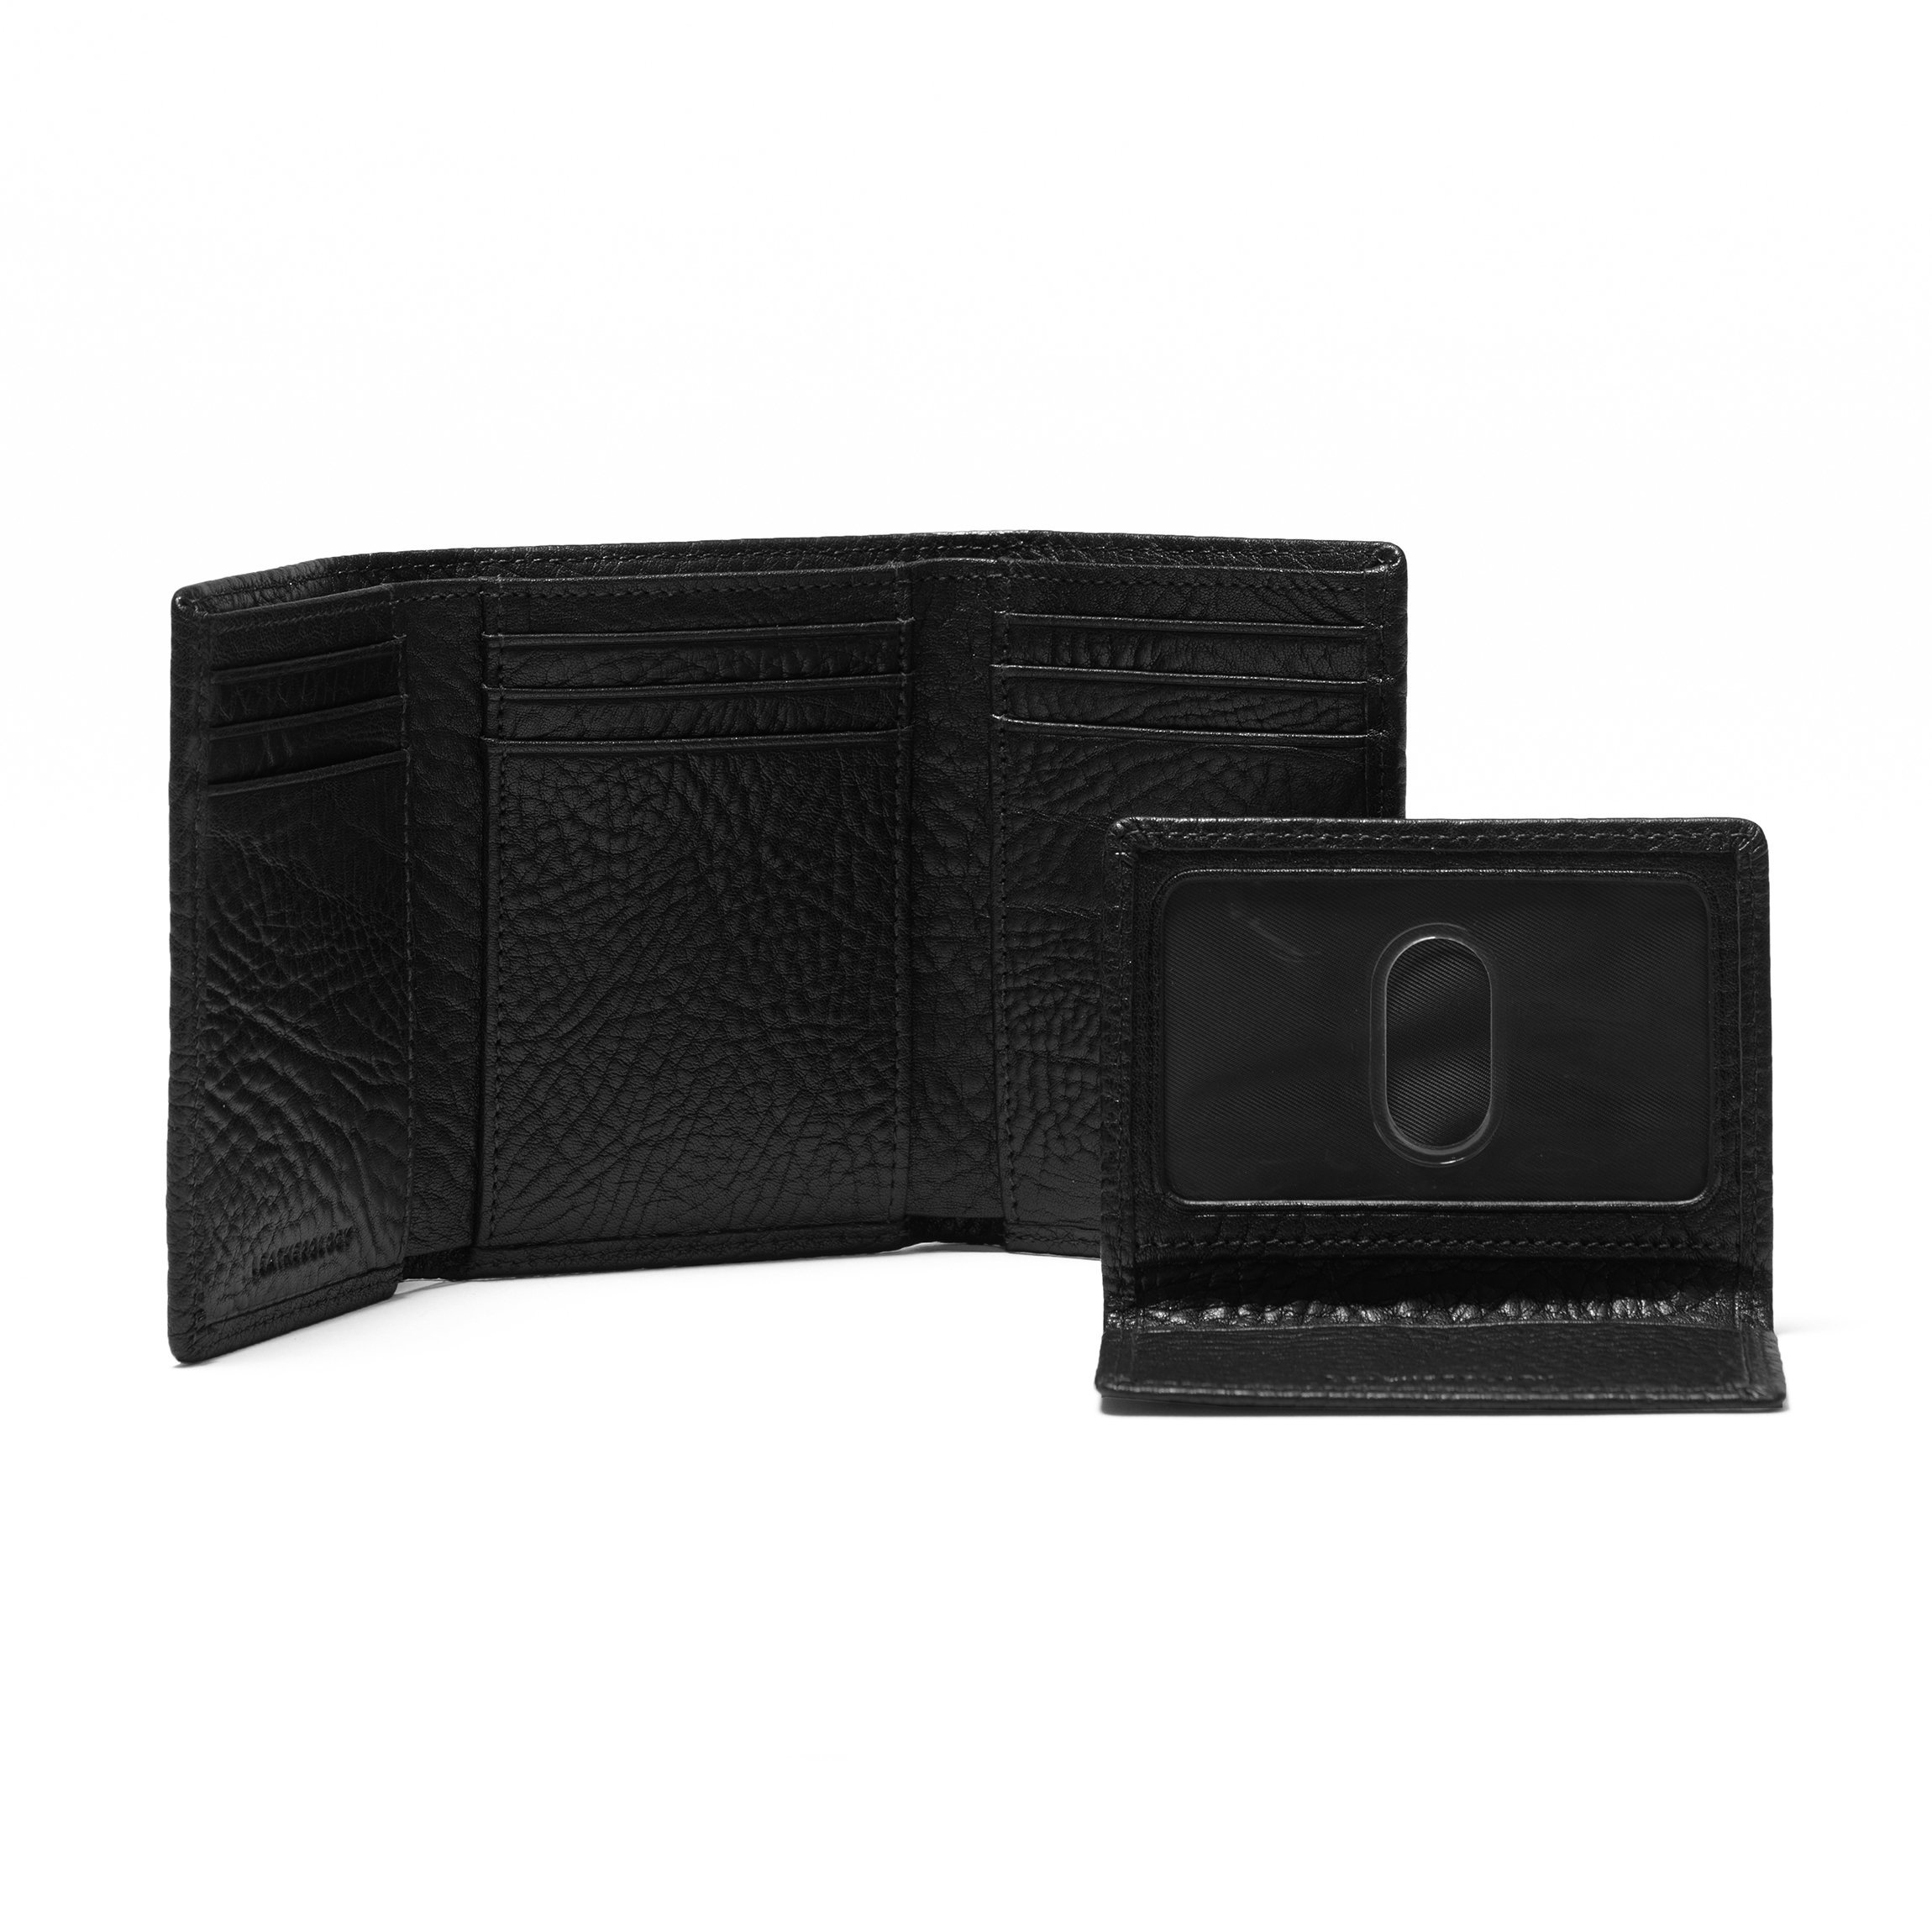 Trifold with Card Wallet - Full Grain Italian Leather Leather - Ebony (black) by Leatherology (Image #2)